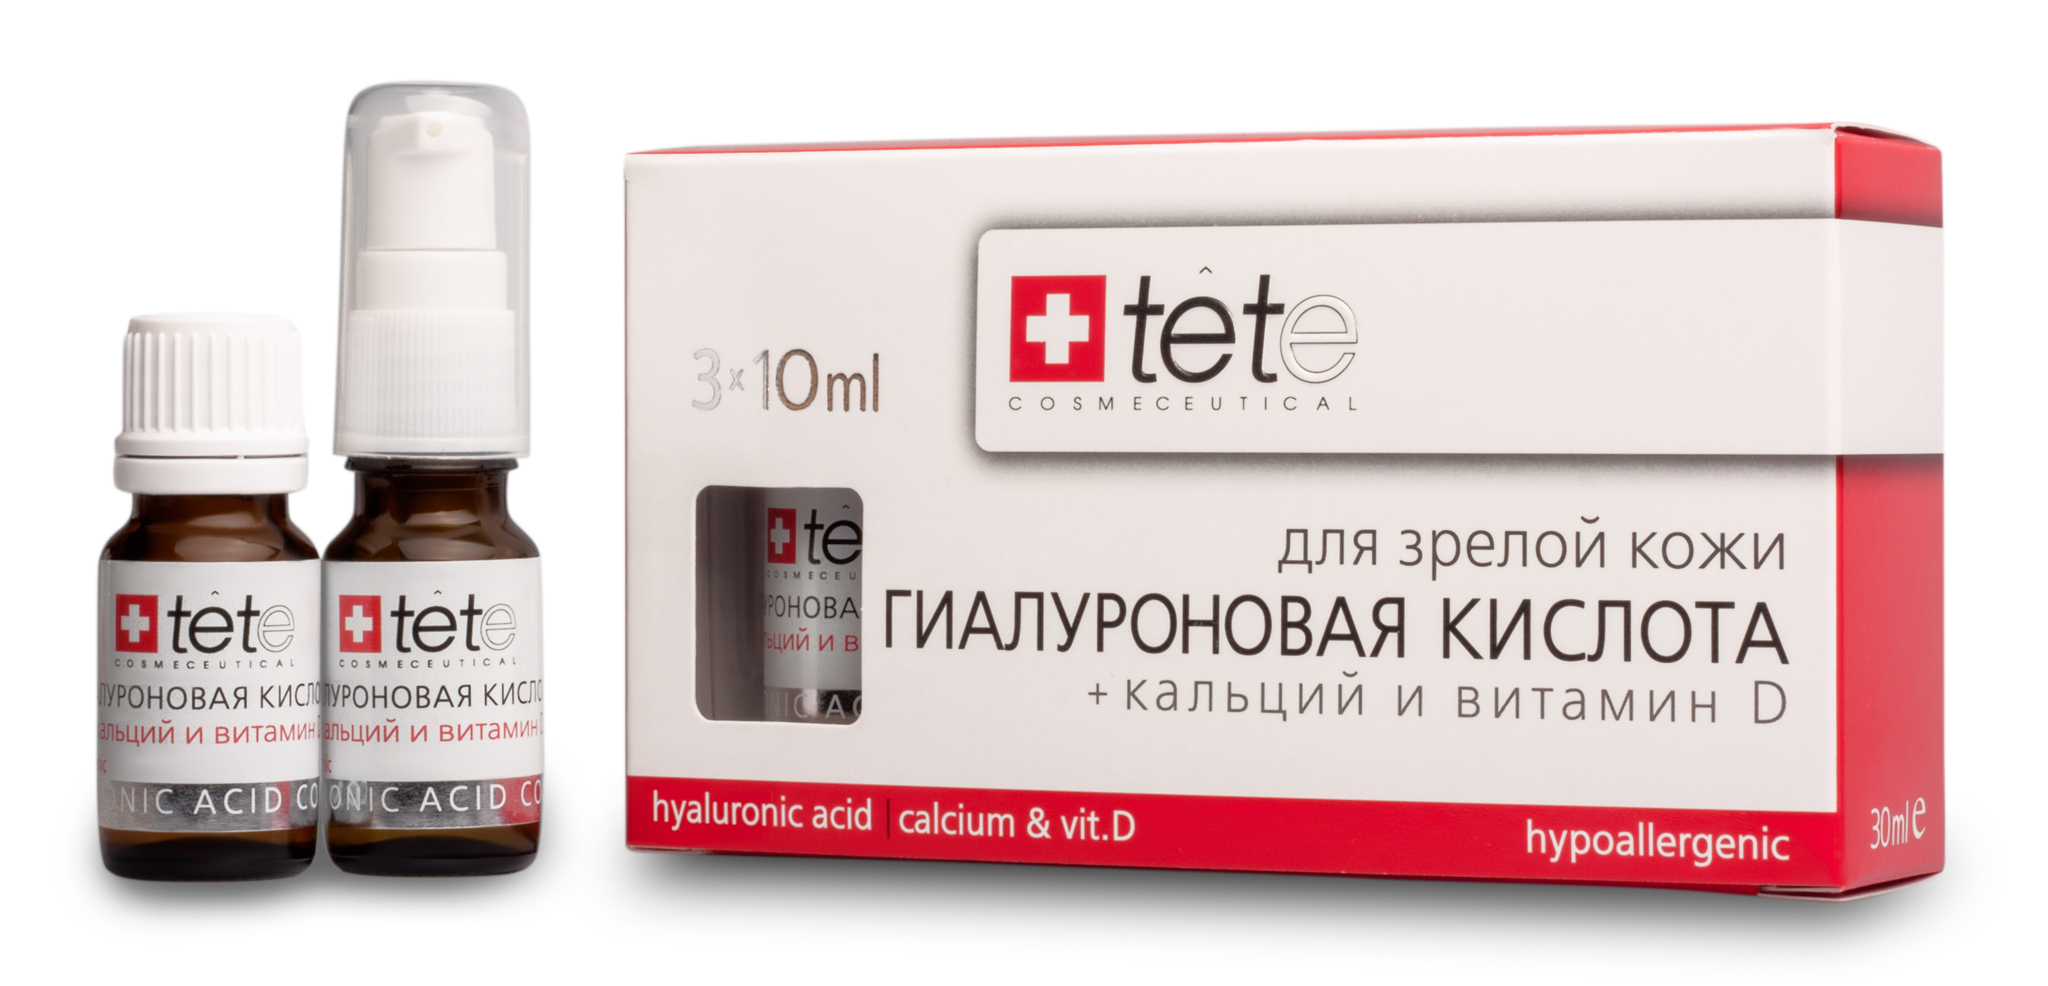 Гиалуроновая кислота + Кальций и Витамин D / TETe Hyaluronic acid + Calcium & Vit.D 3*10 ml